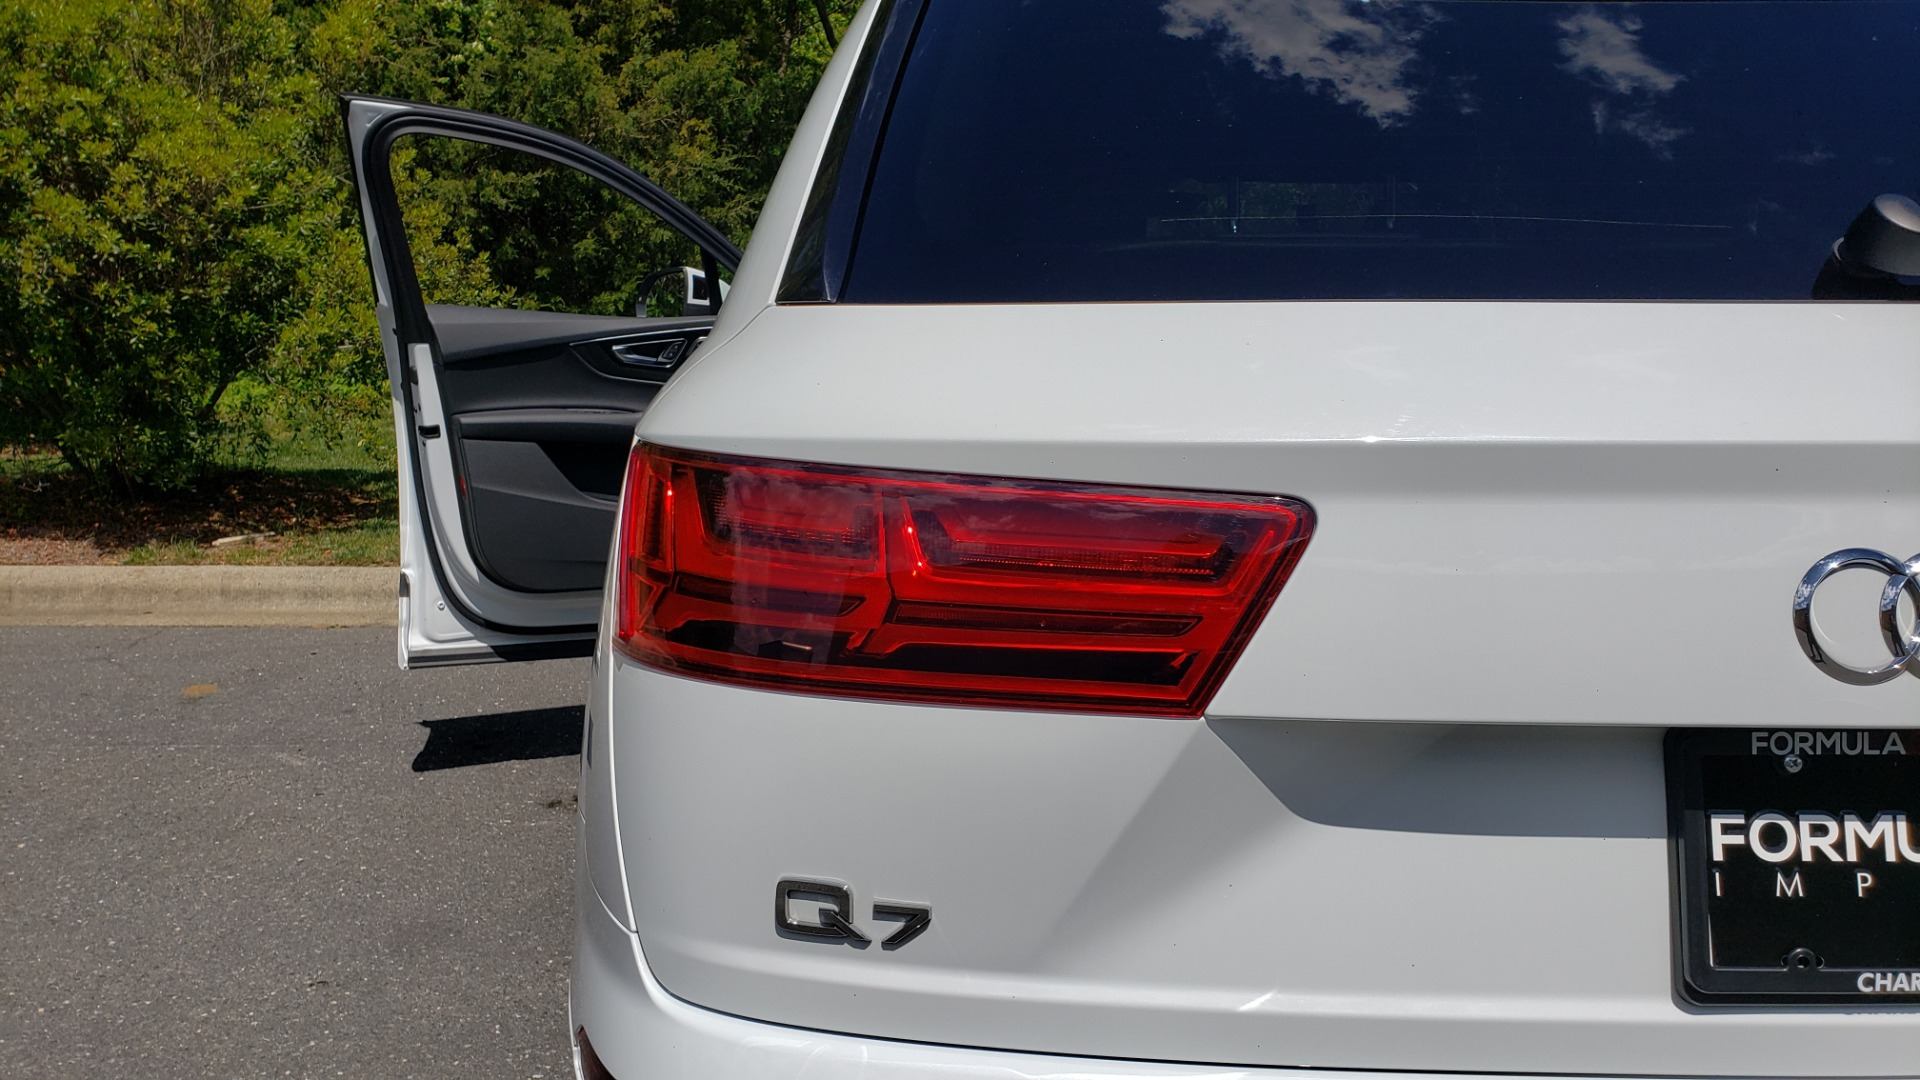 Used 2017 Audi Q7 PREMIUM PLUS / VISION PKG / NAV / PANO-ROOF / 3-ROW / REARVIEW for sale Sold at Formula Imports in Charlotte NC 28227 31